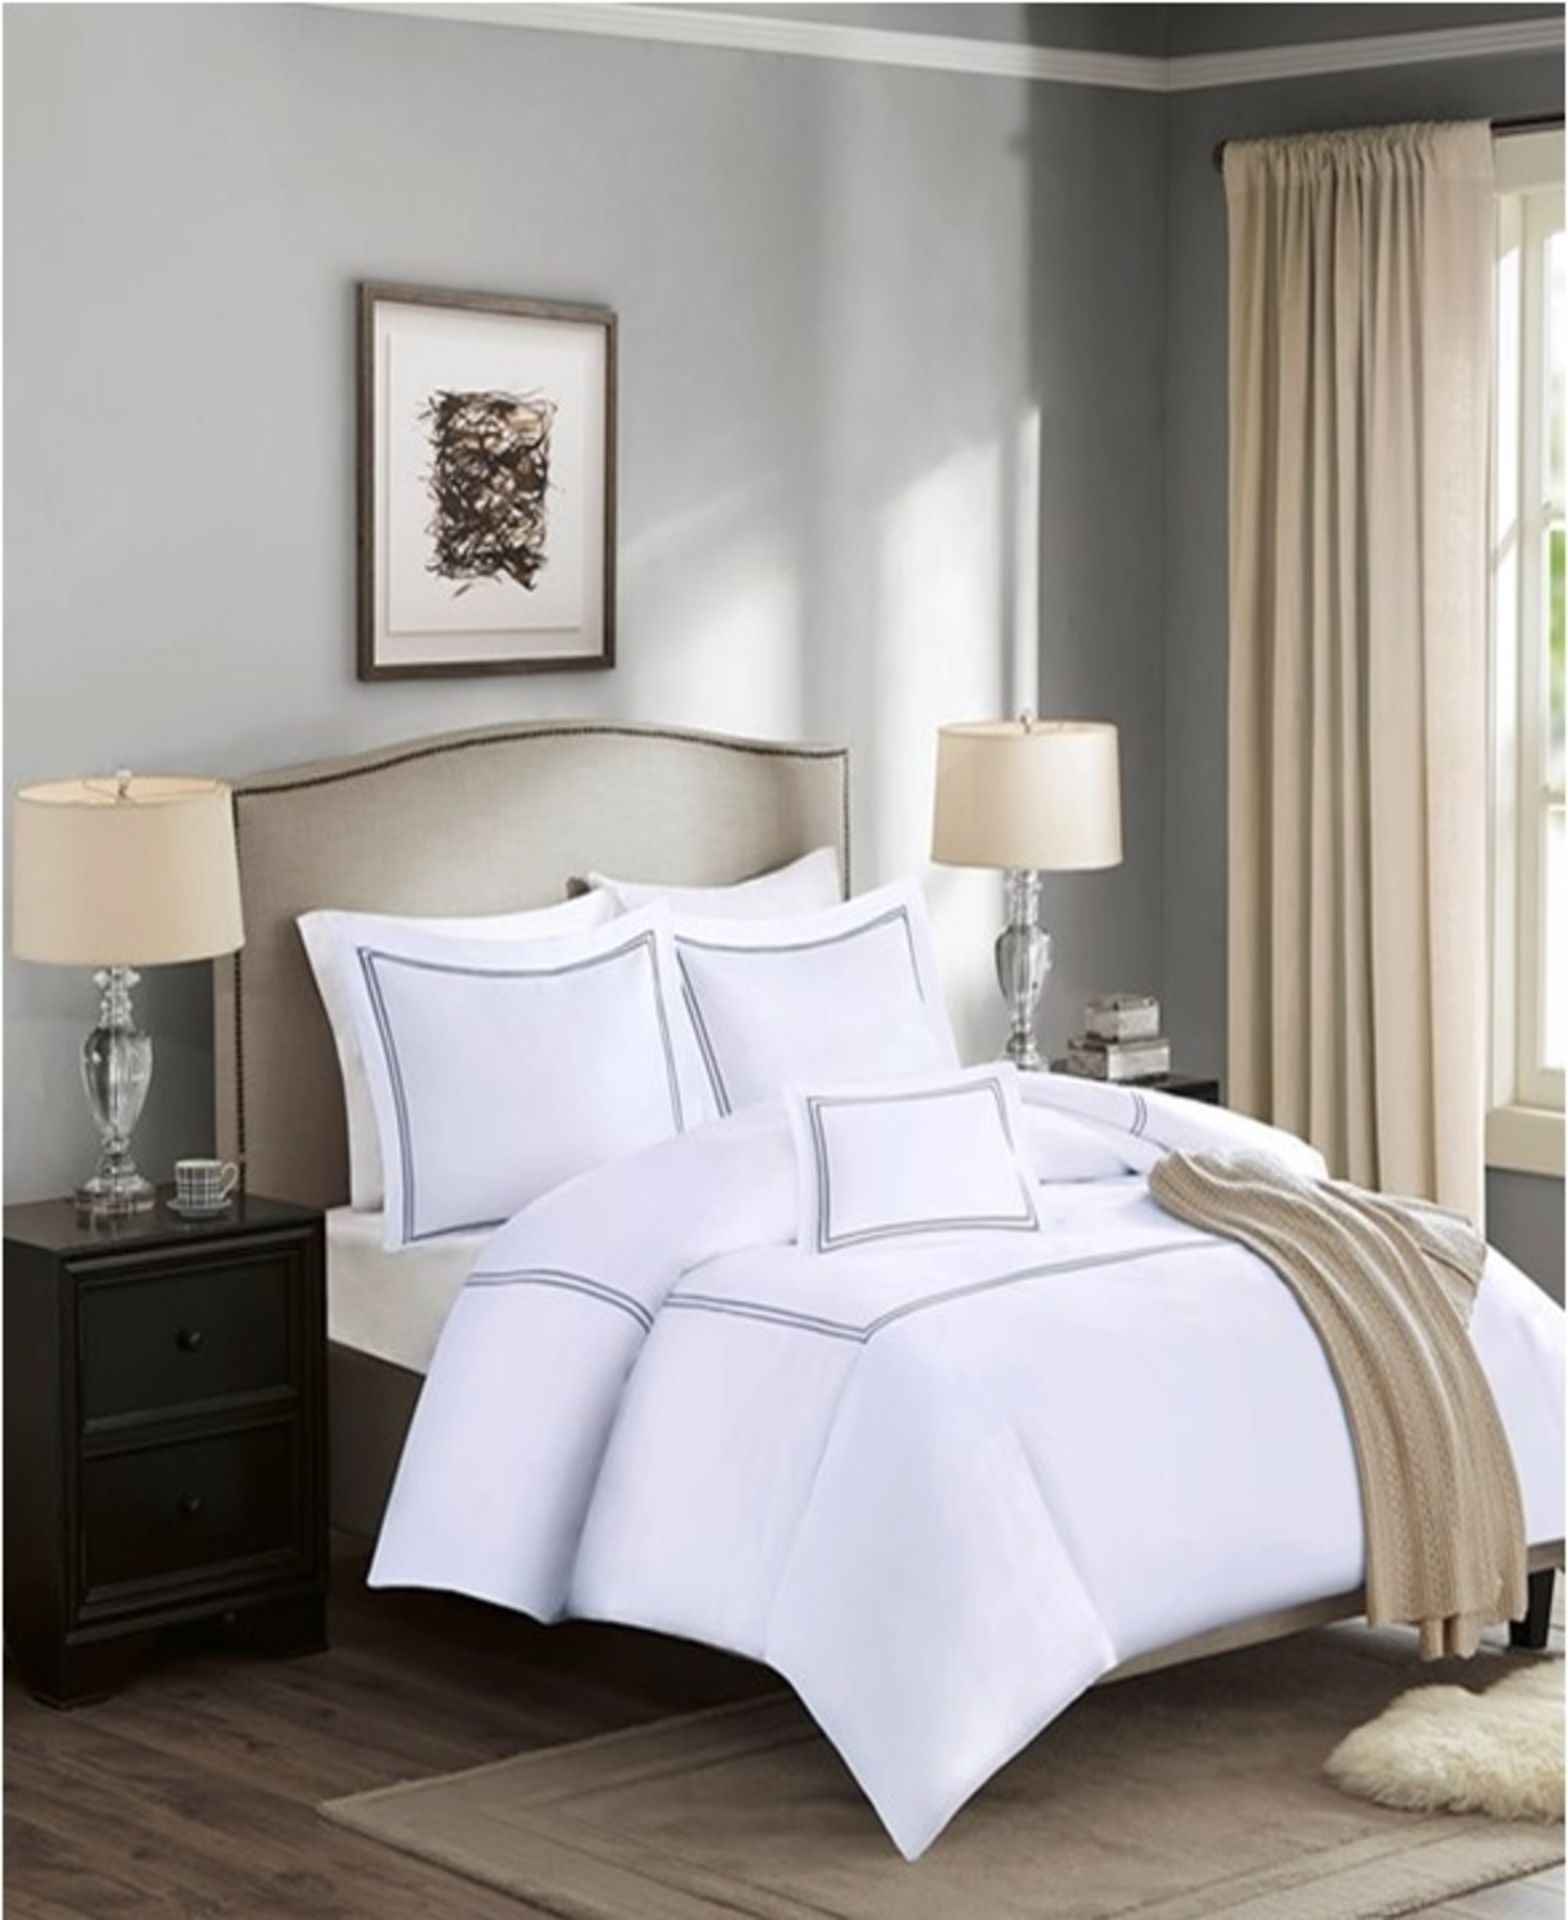 Lot 162 - 1 x Madison Park Luxury Collection King Duvet Set White - Product Code MP12-0199UK (Brand New -